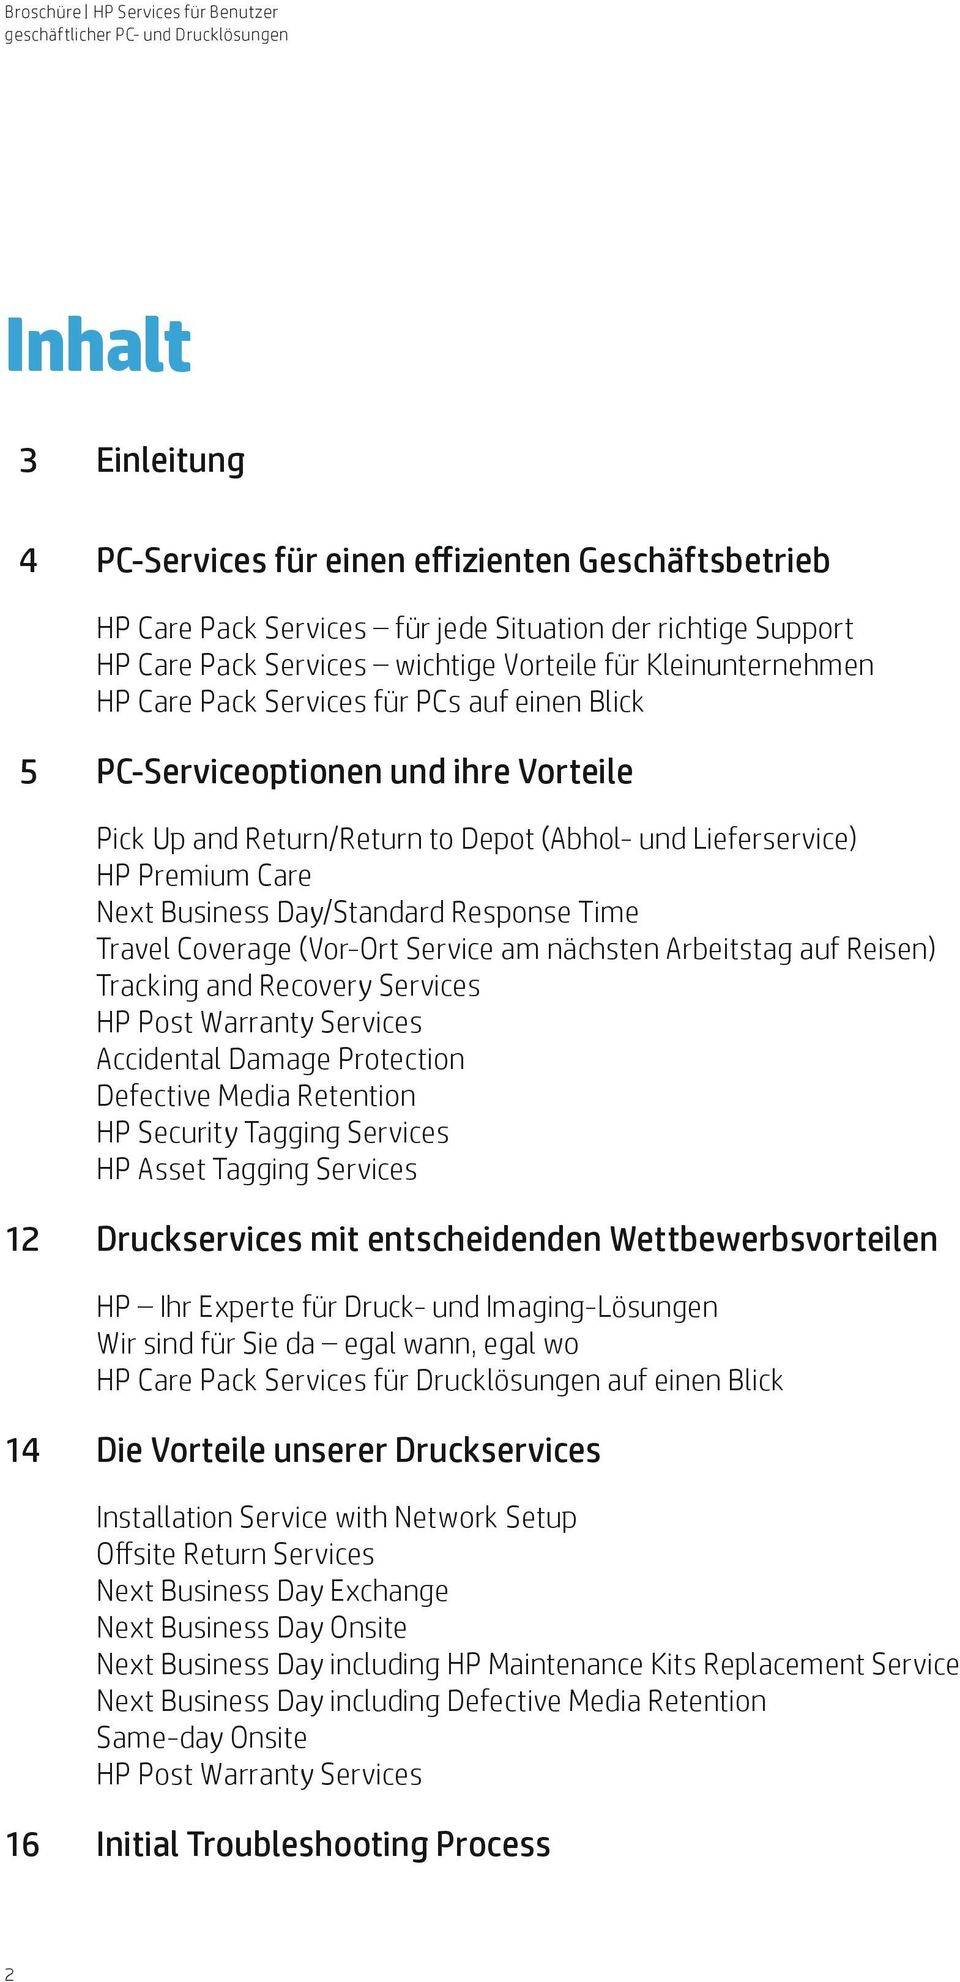 Time Travel Coverage (Vor-Ort Service am nächsten Arbeitstag auf Reisen) Tracking and Recovery Services HP Post Warranty Services Accidental Damage Protection Defective Media Retention HP Security